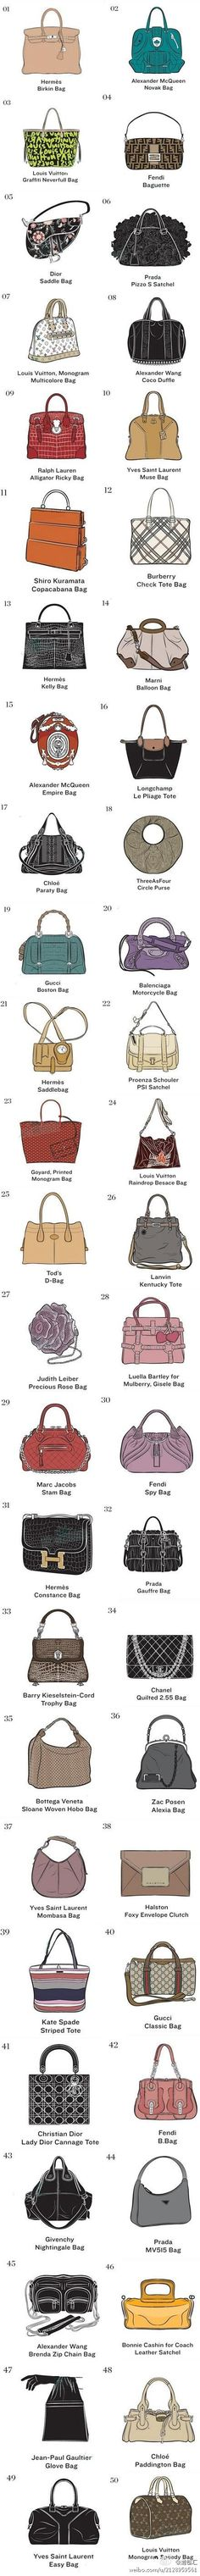 WOW!!!! All kinds of handbags!